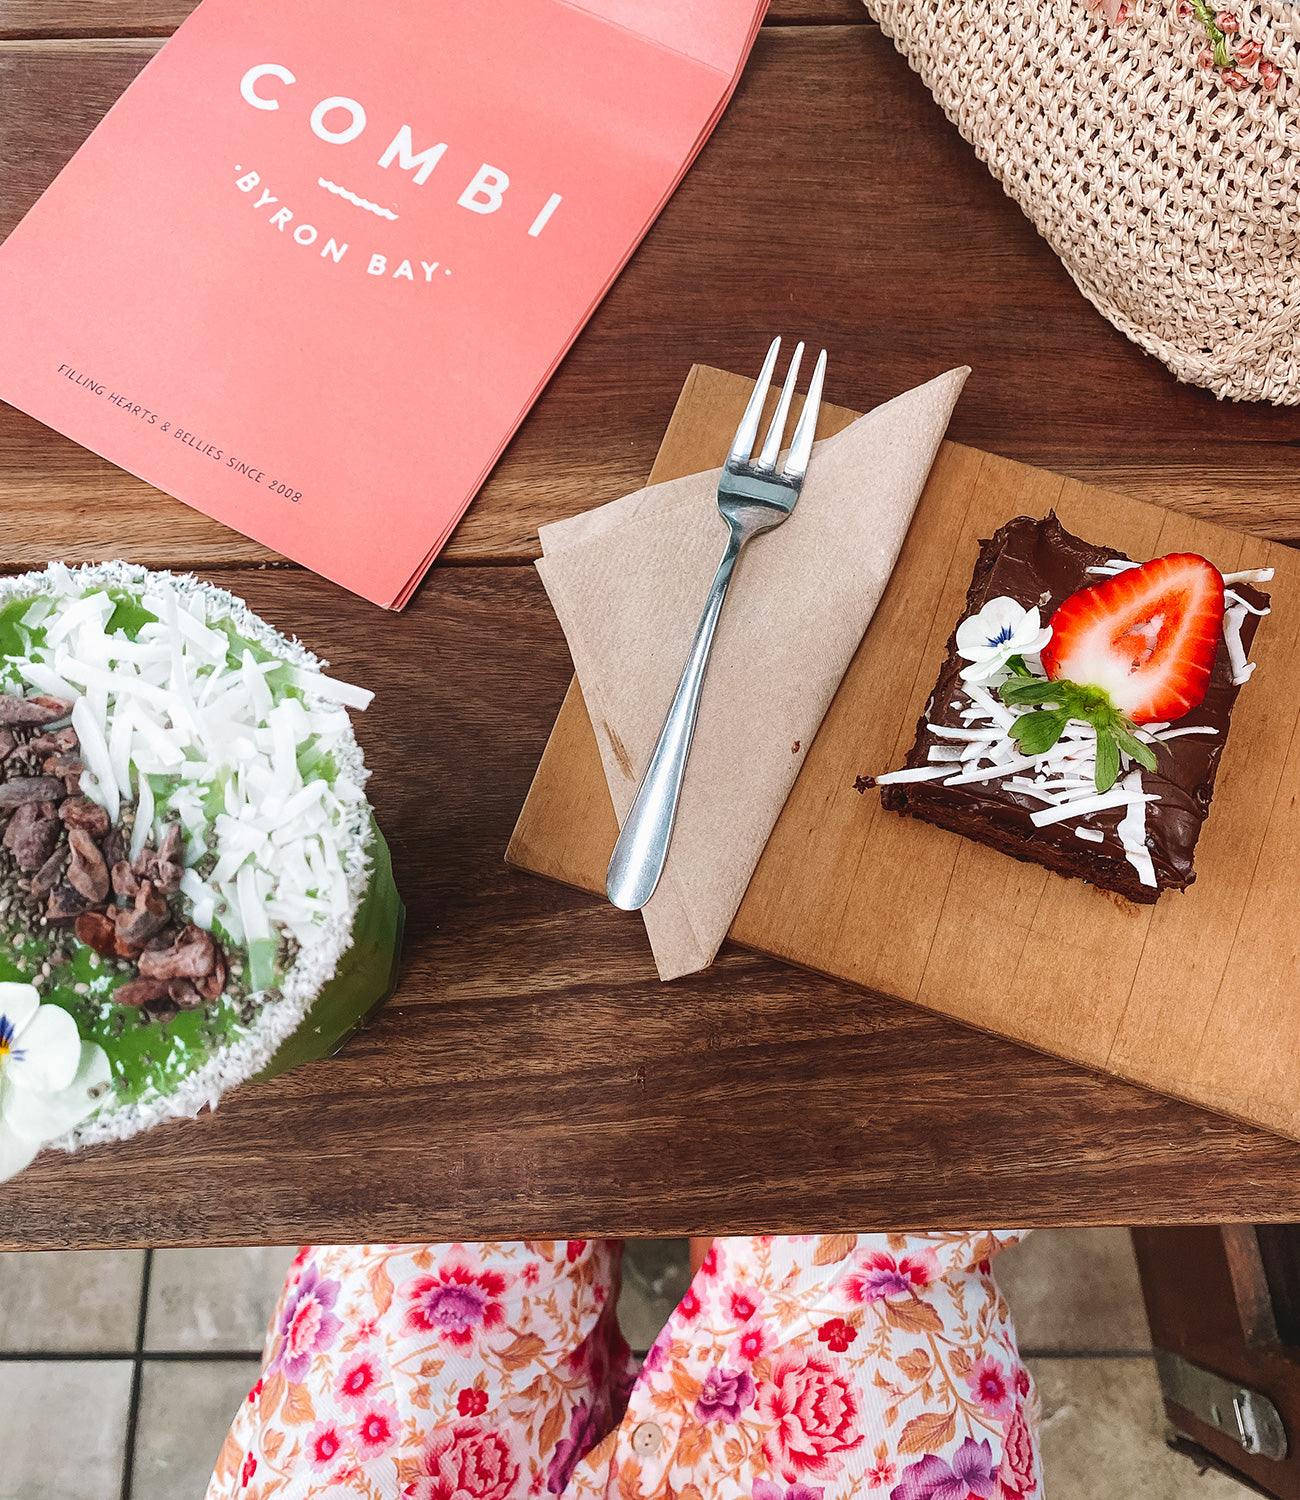 Organic raw food at Combi Byron Bay on the blog at Arnhem